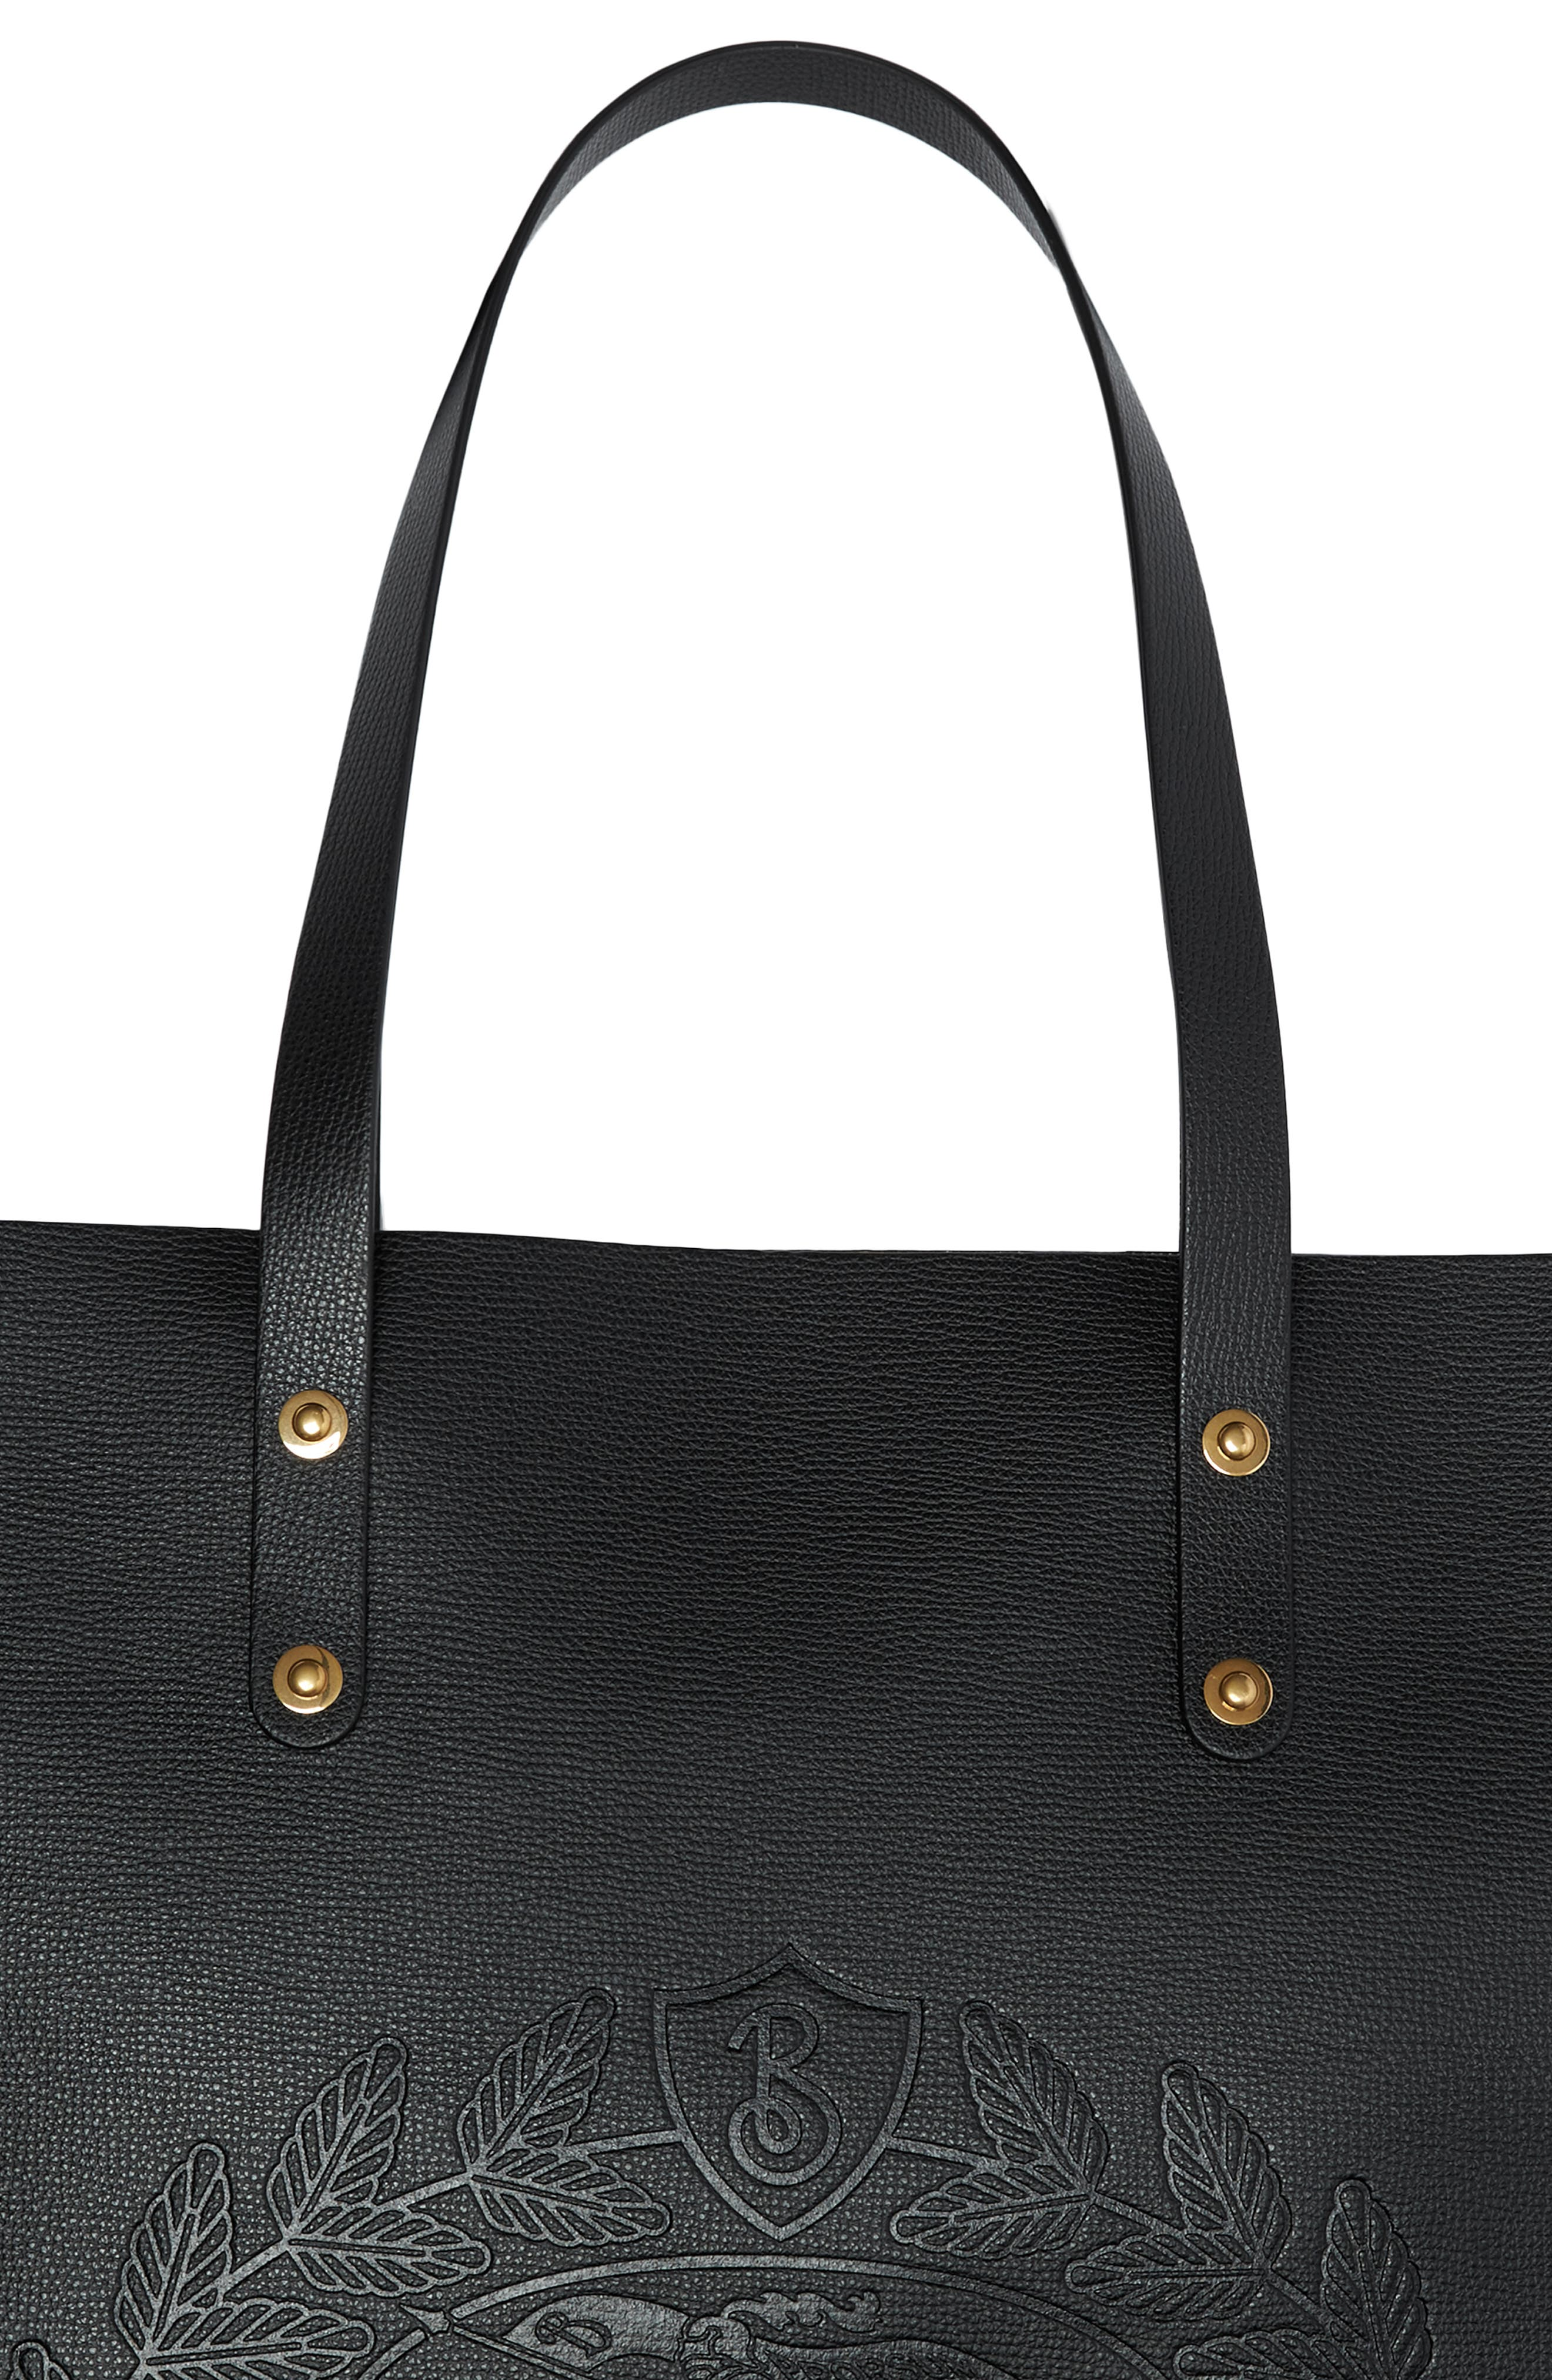 Embossed Crest Large Leather Tote,                             Alternate thumbnail 5, color,                             BLACK